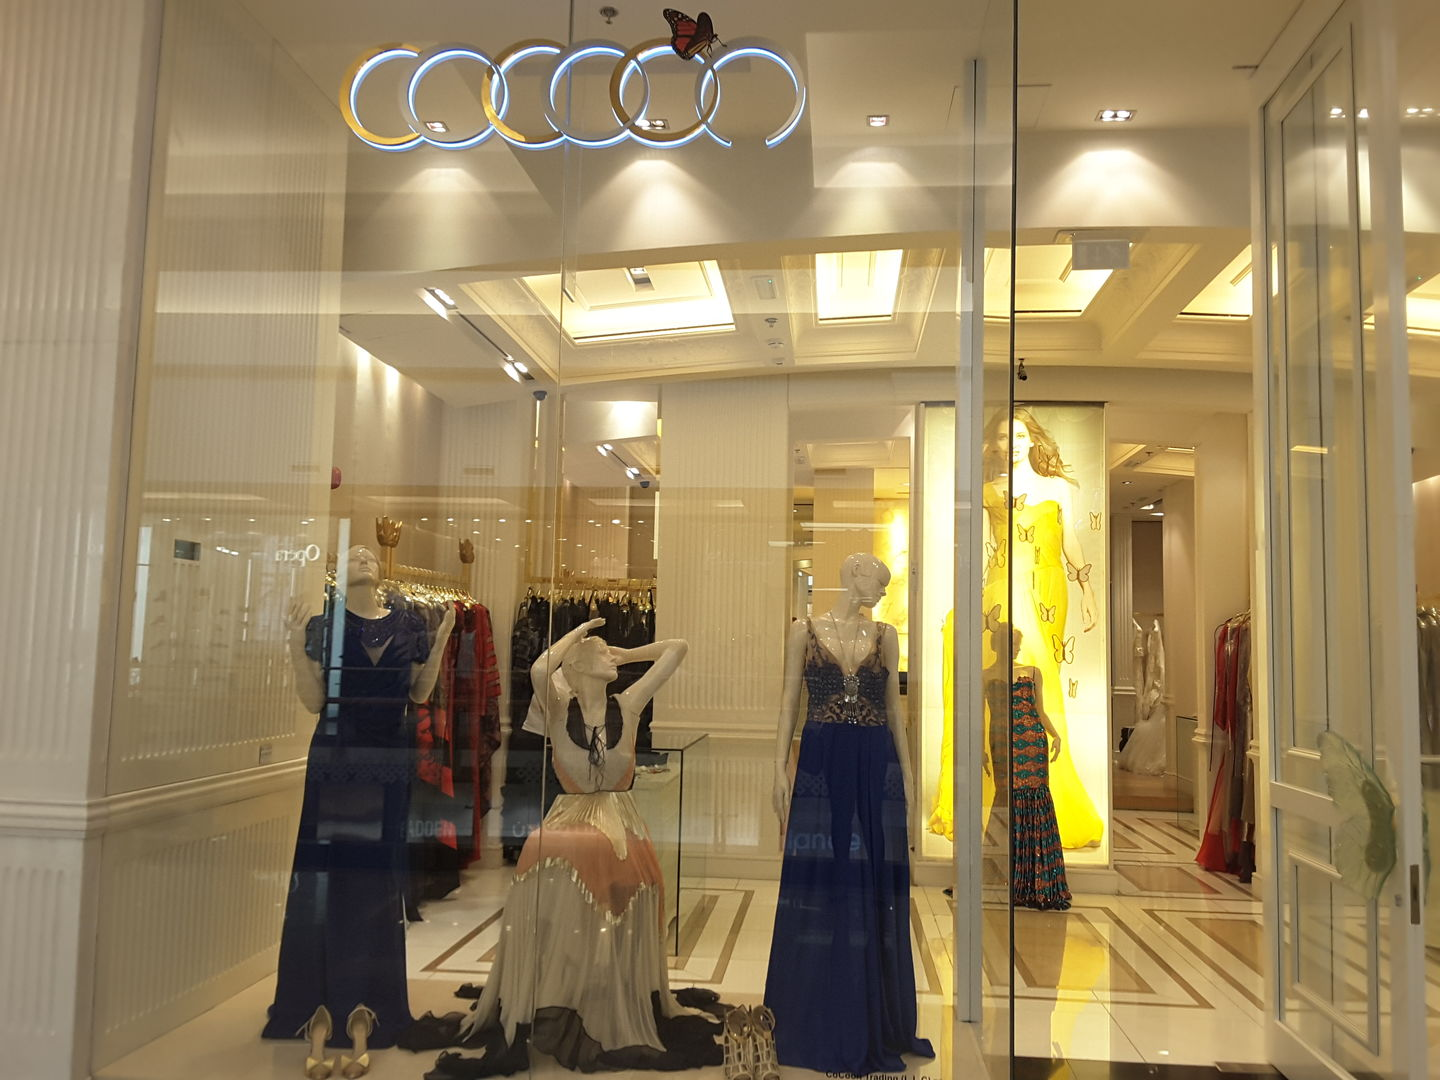 HiDubai-business-cocoon-shopping-apparel-al-barsha-1-dubai-2